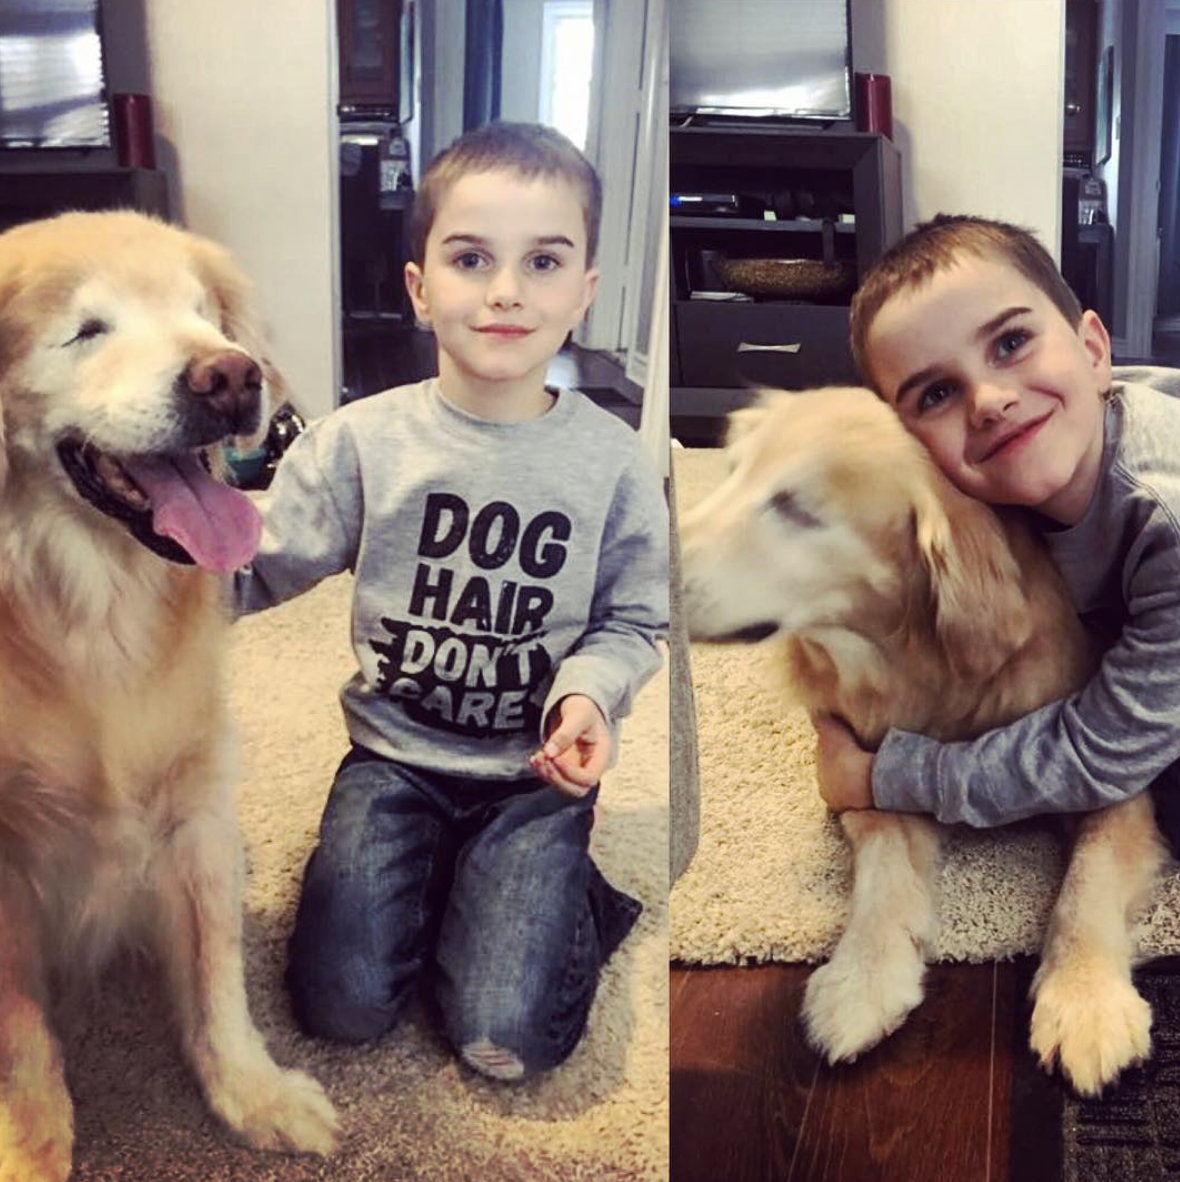 Just recently one of our crowning achievements was getting @Mysmileydog & @Barkleyandwagz apparel in the same photo.   From Smiley The Blind Therapy Dog on Instagram